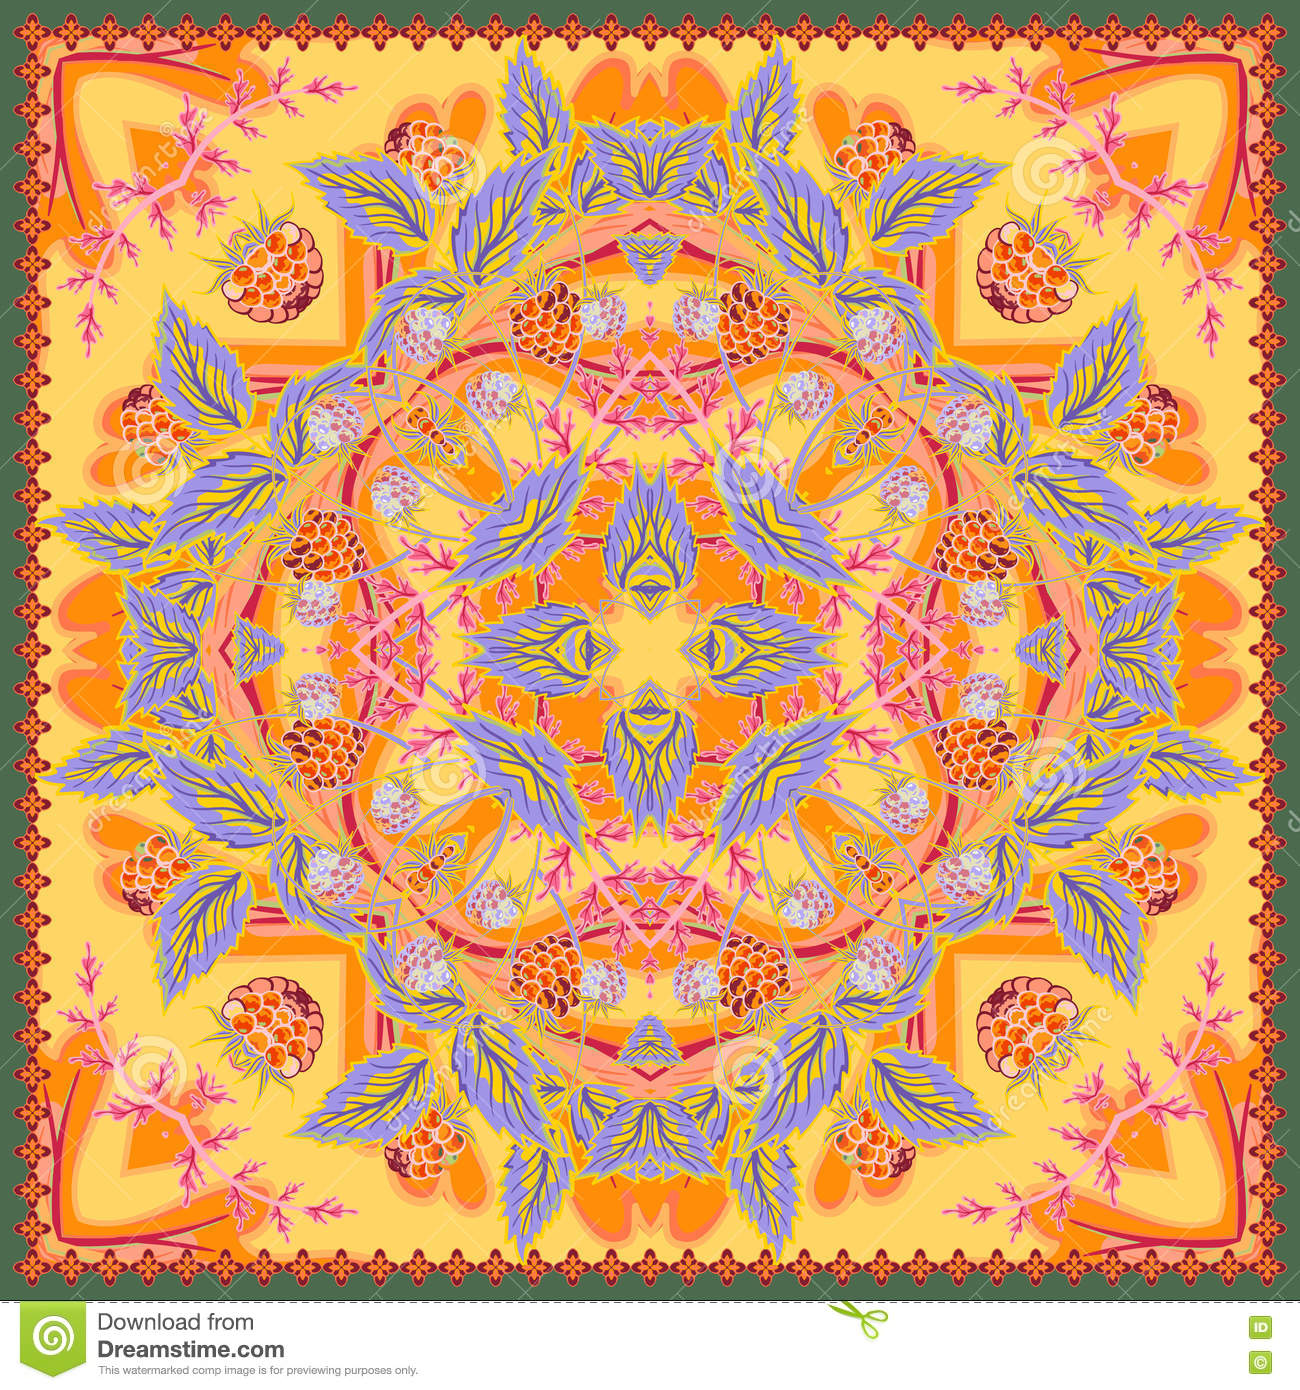 6d09c742ac4b3 Floral tablecloth background. Strawberry authentic silk neck scarf or  kerchief square pattern design for print on fabric, vector illustration.  Orange yellow ...